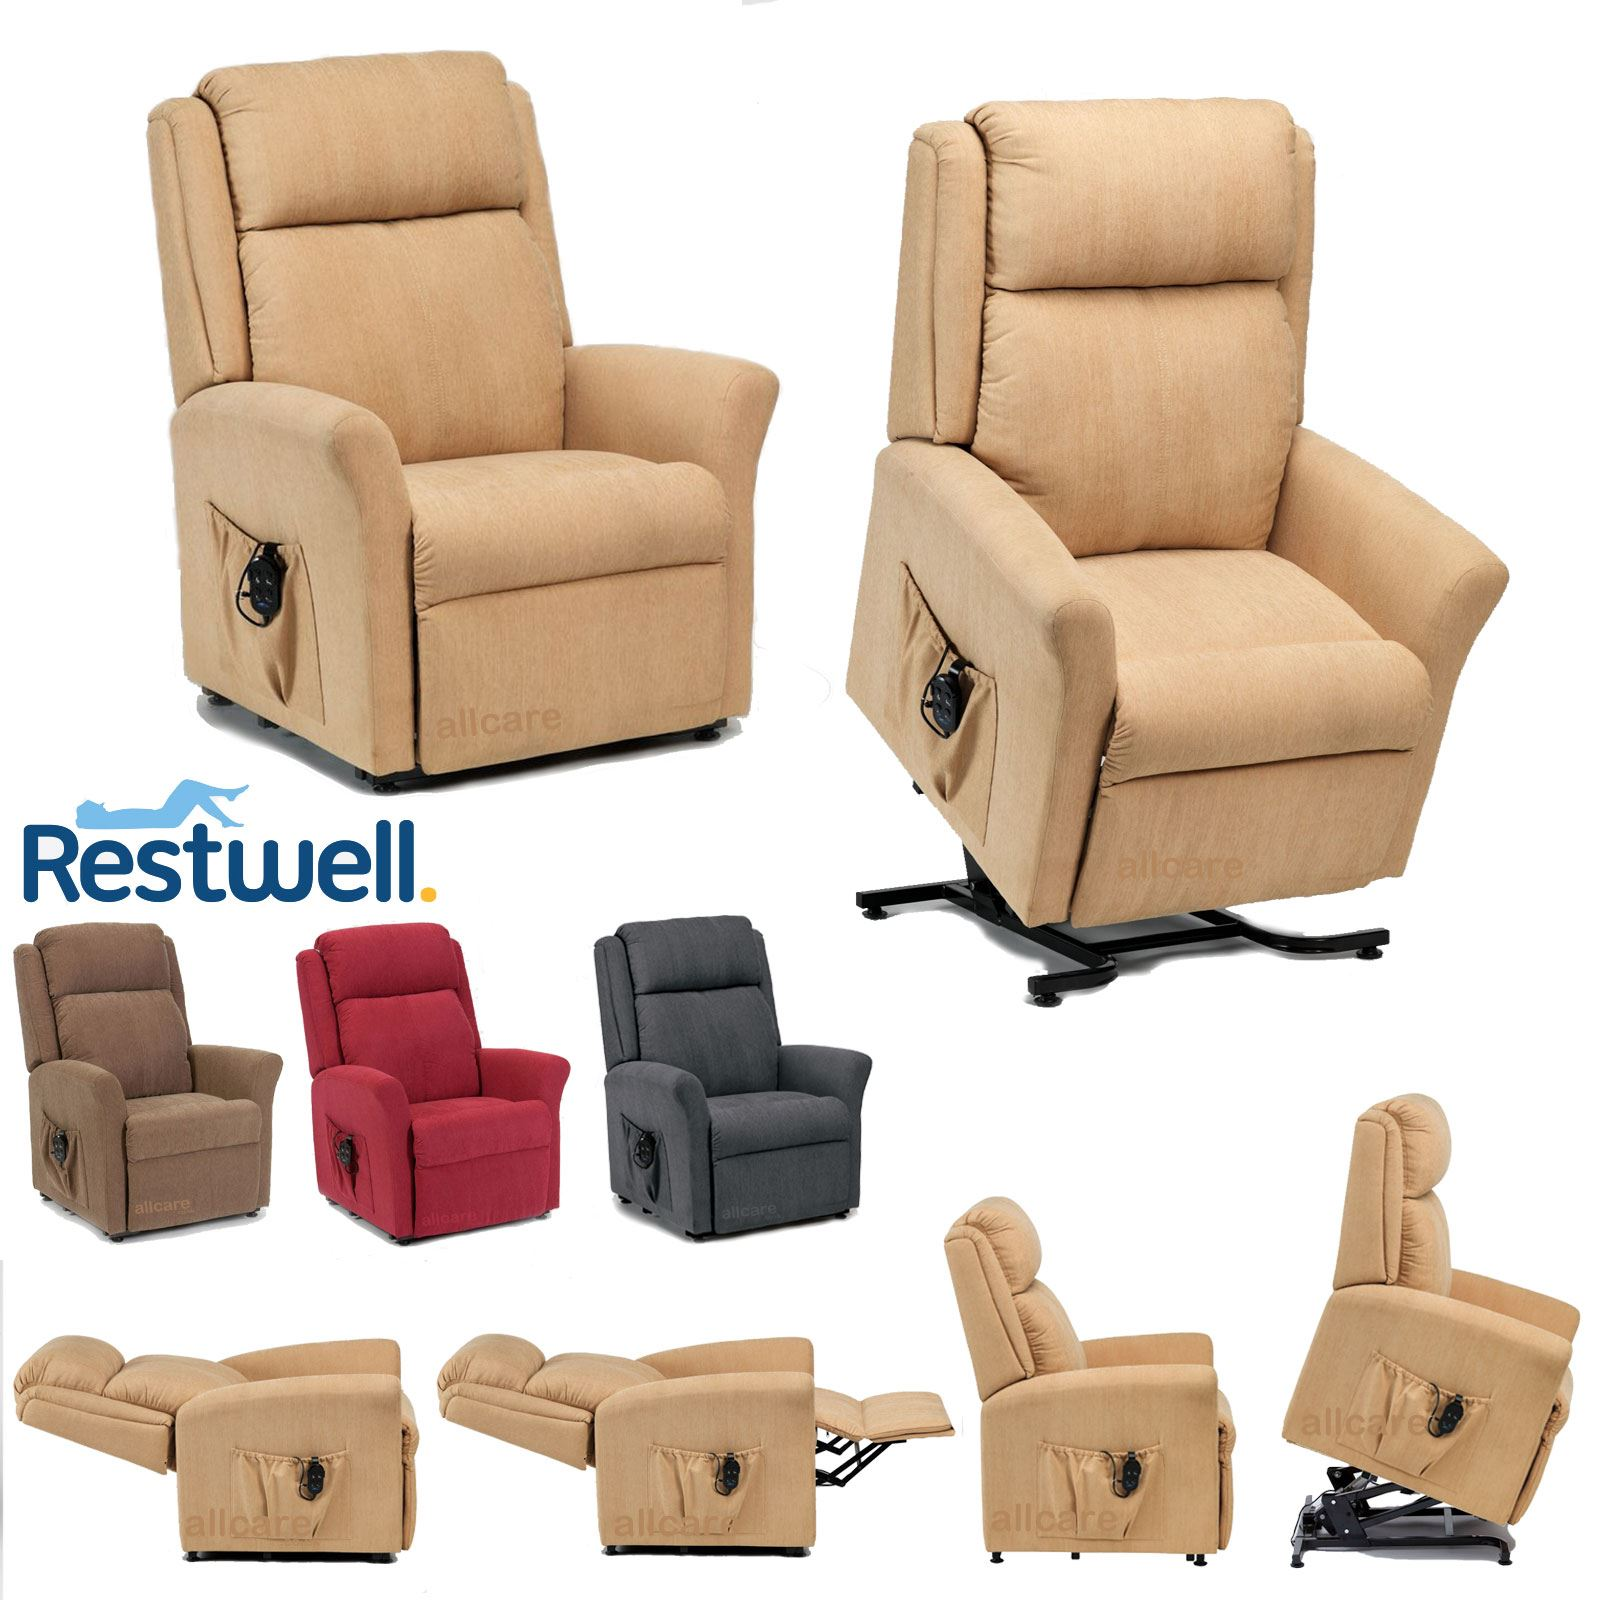 Details about Restwell Memphis Fabric Electric Riser Recliner Chair Dual Motor Mobility Lift